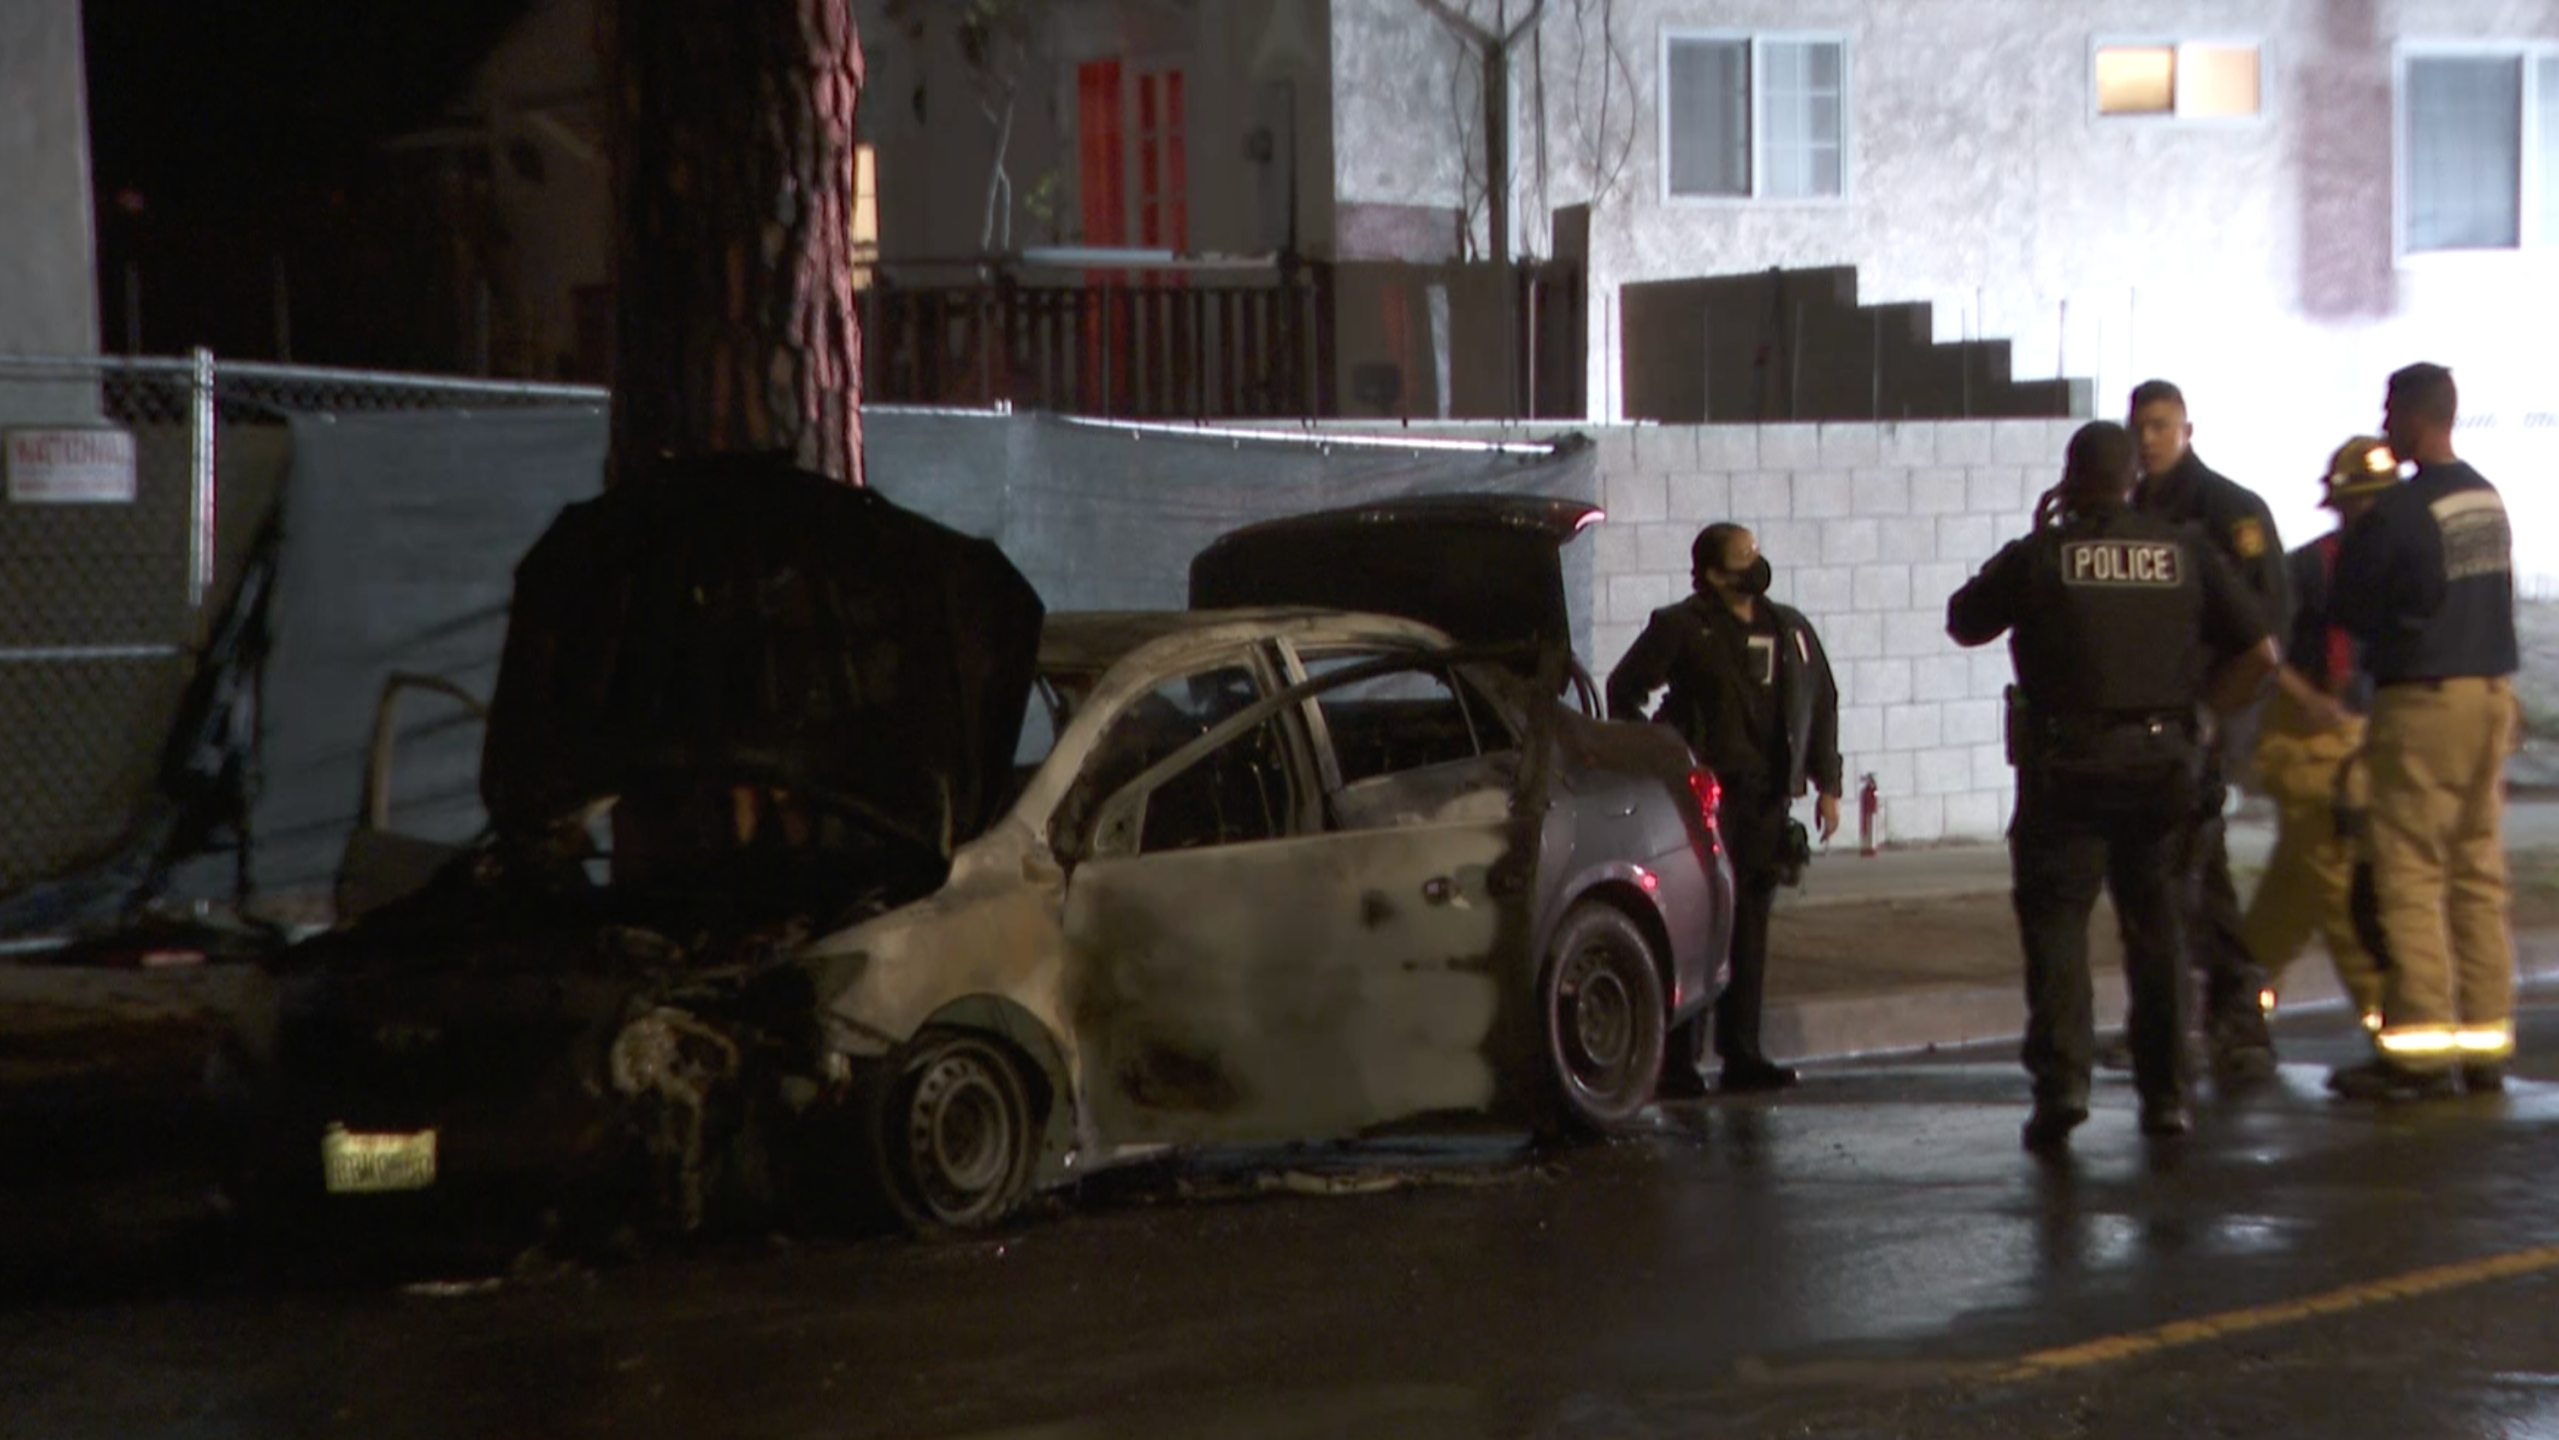 Authorities respond to investigate after a man and stolen vehicle were found engulfed in flames in Rancho Park on April 12, 2021. (KTLA)